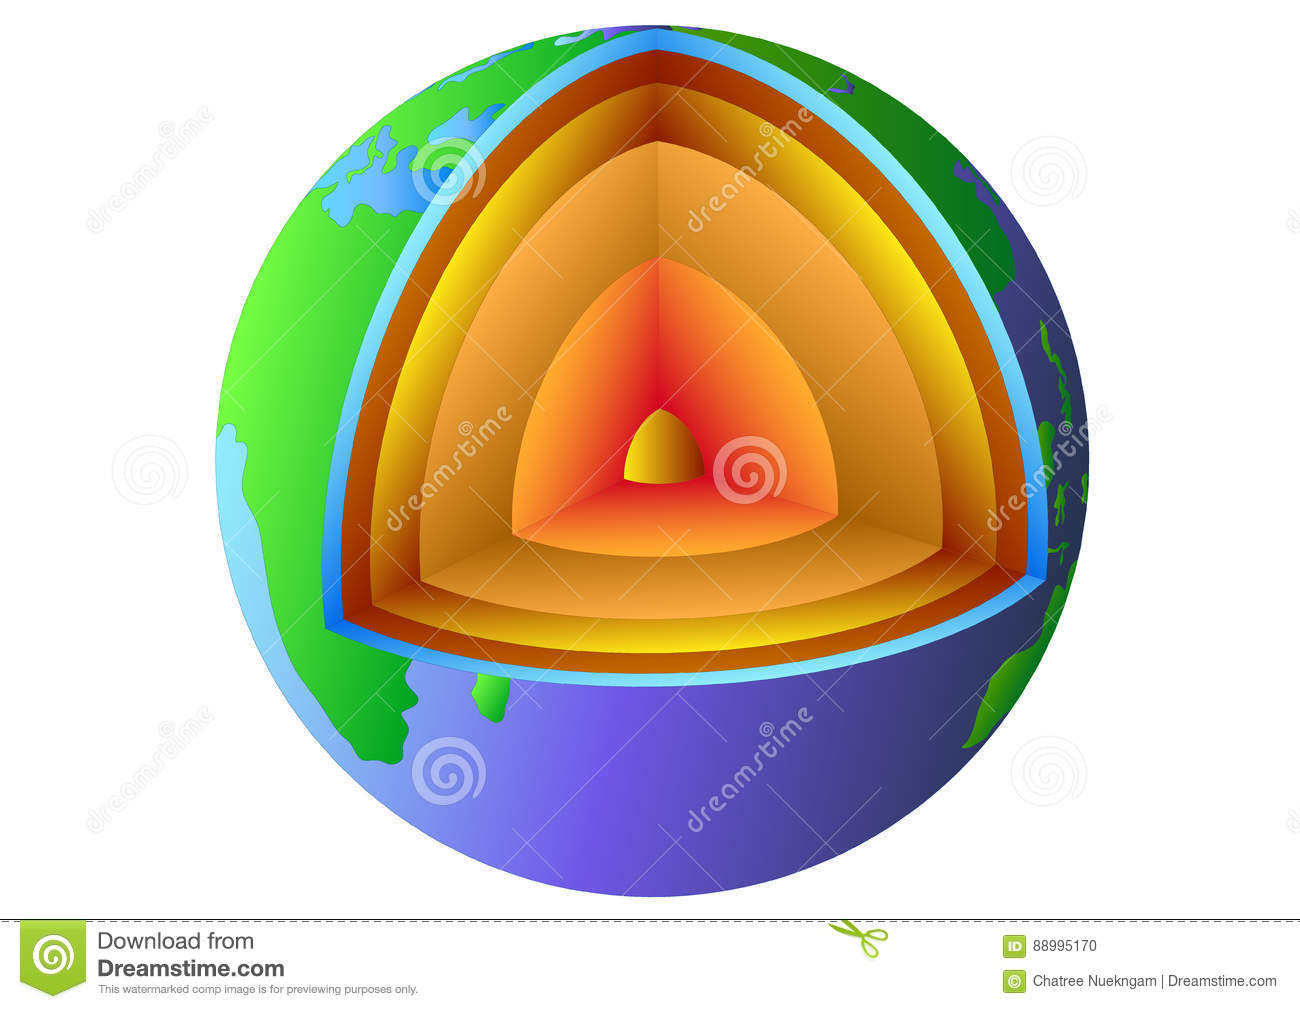 hight resolution of the interior structure of the earth is layered in spherical art for graphic or website layout